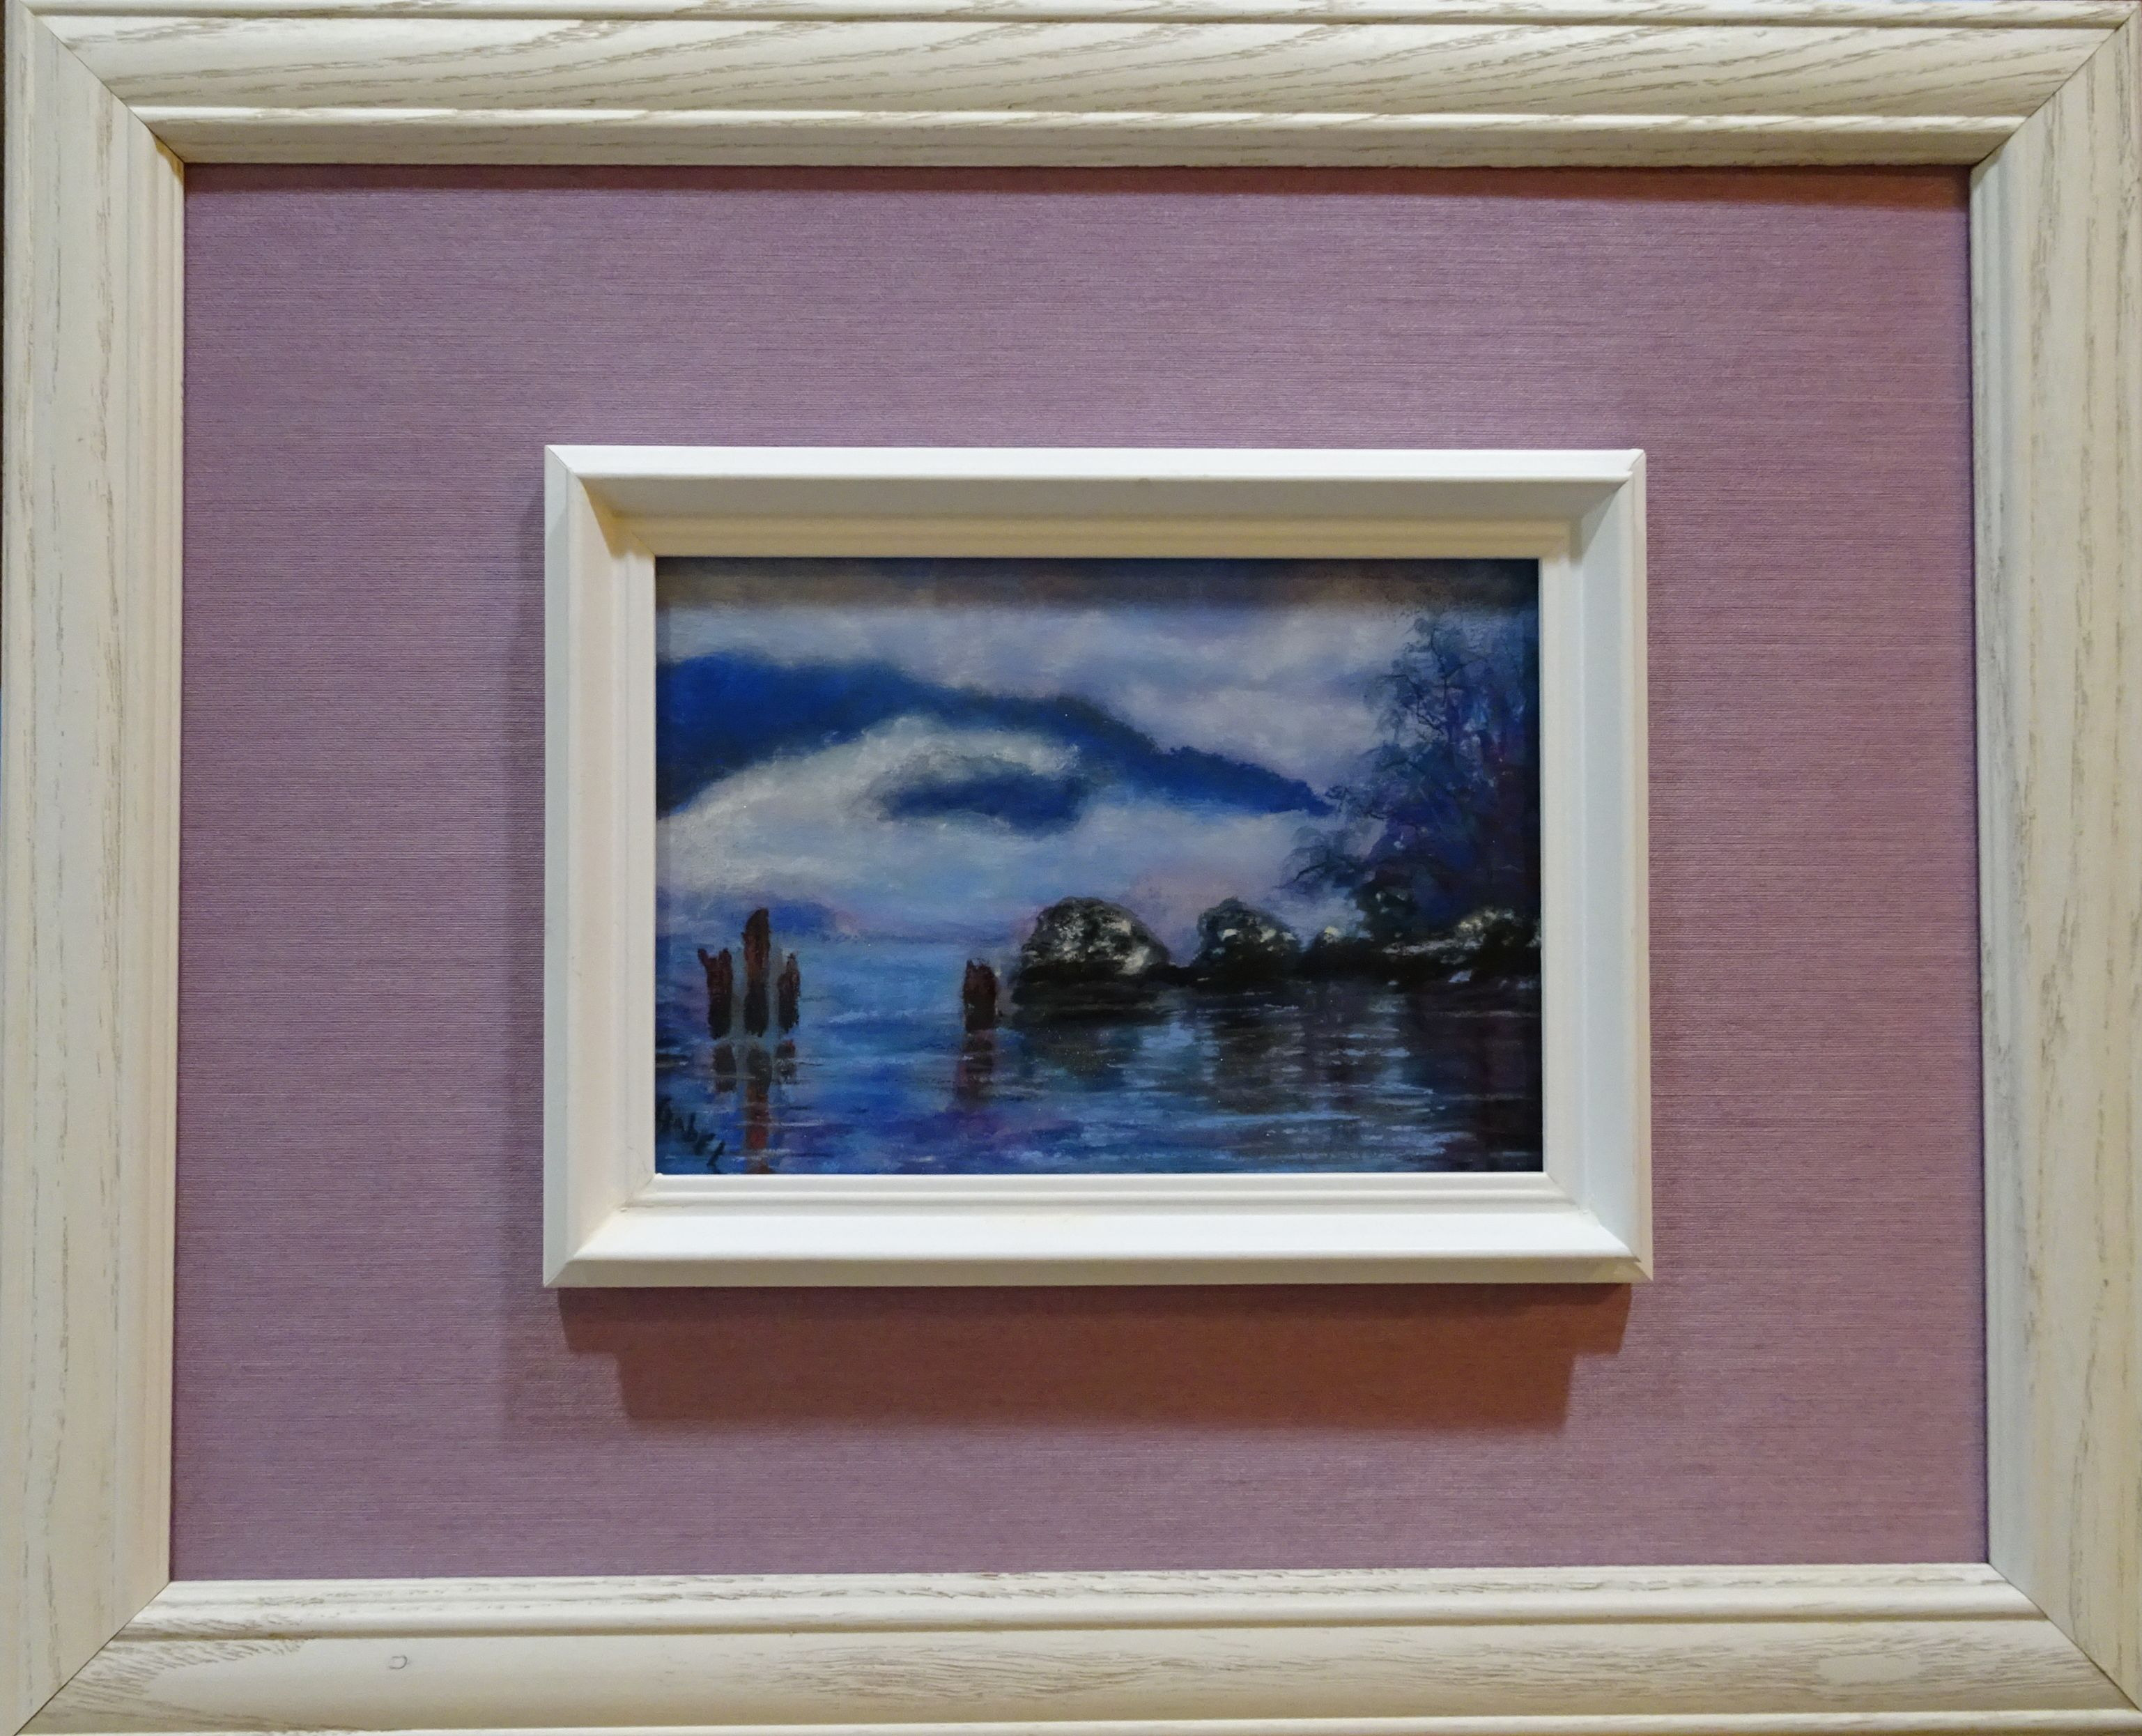 """© Laura Gabel, """"Daydreaming 1"""". 5x7 framed to 13x16, mixed media. $99."""